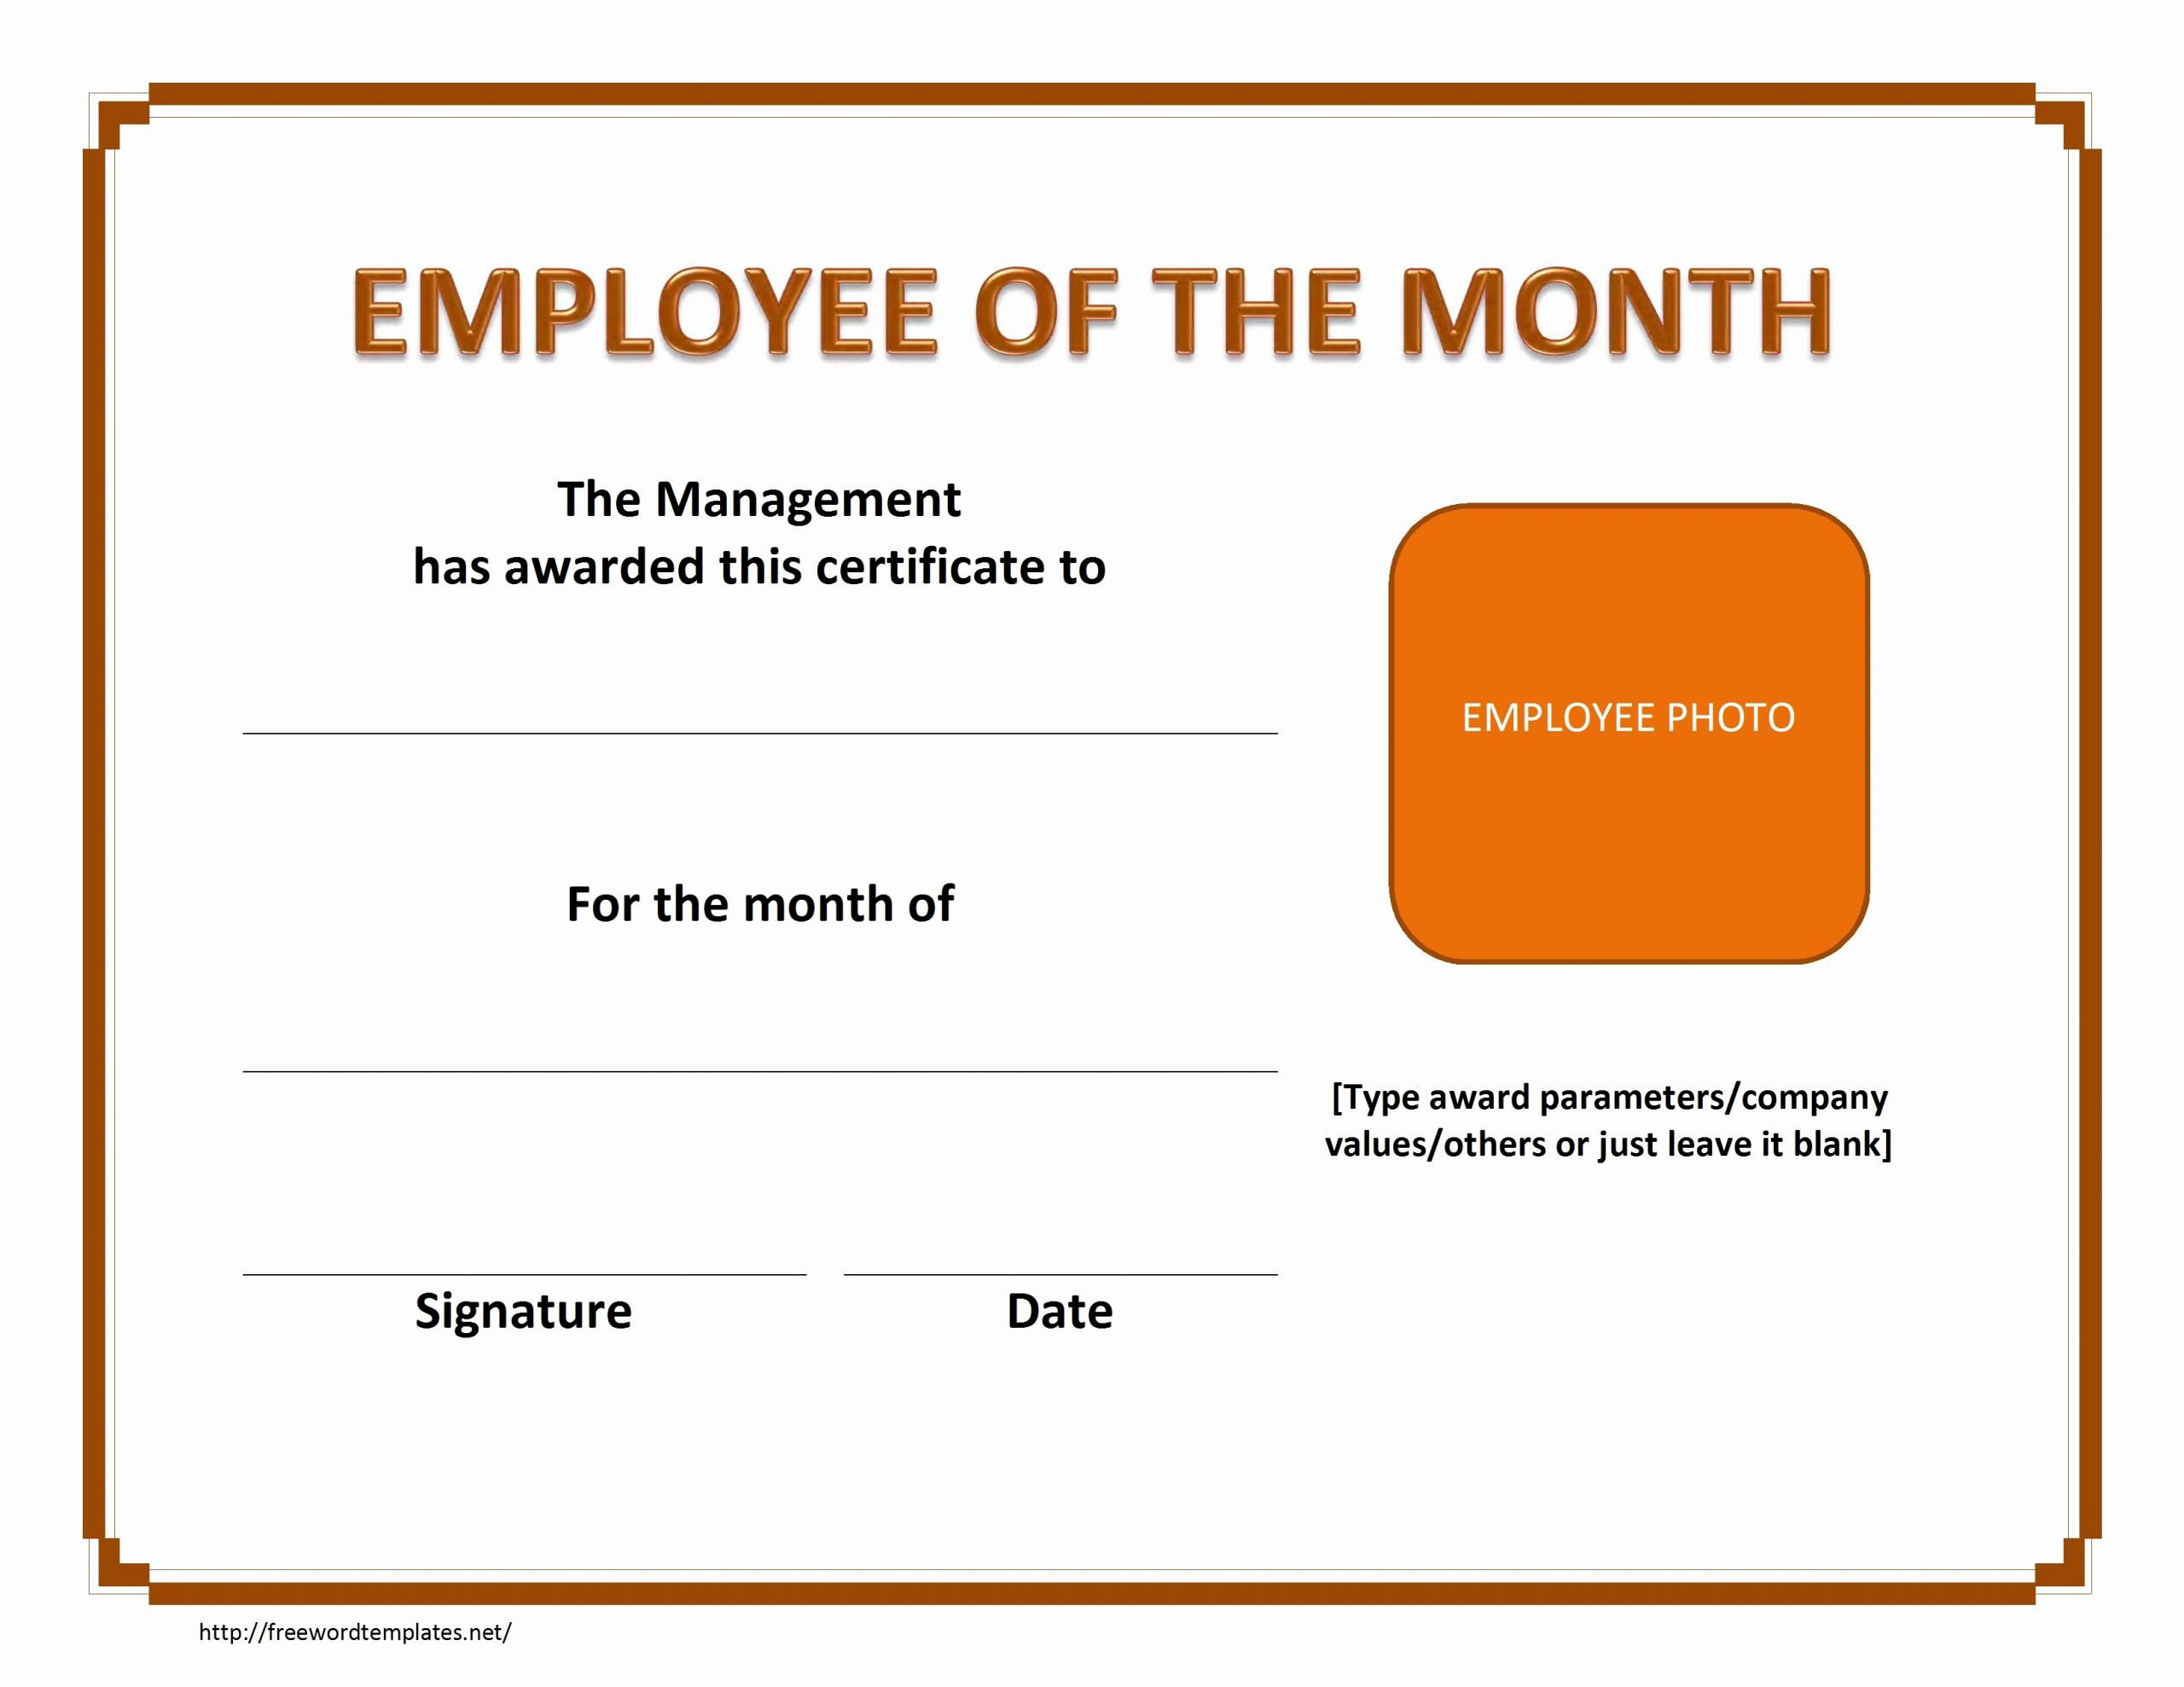 Employee Of the Month Certificate Free Template Inspirational Best Employee the Month Certificate Template